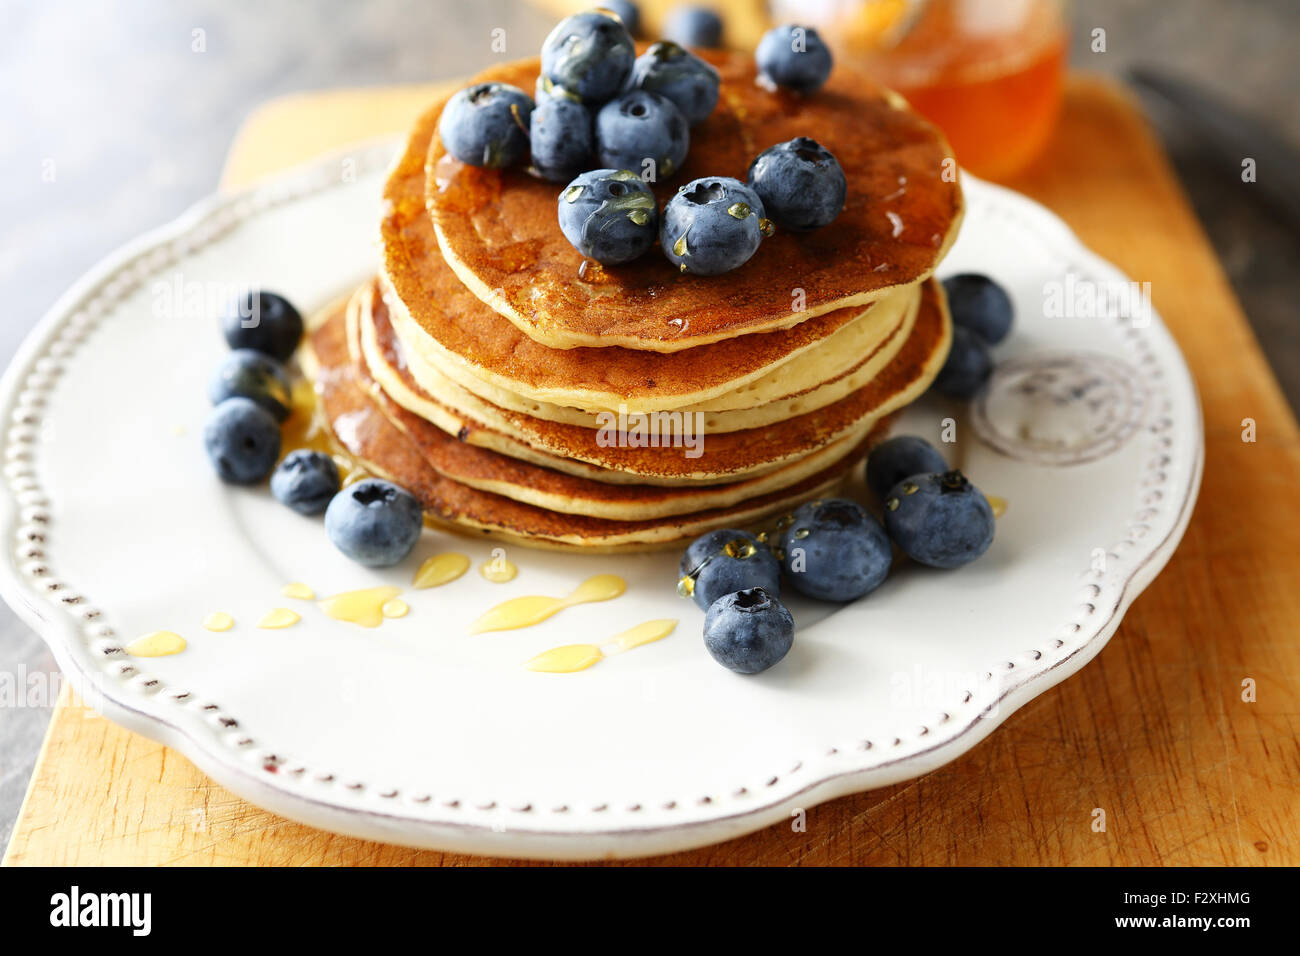 american pancakes with syrup on plate - Stock Image